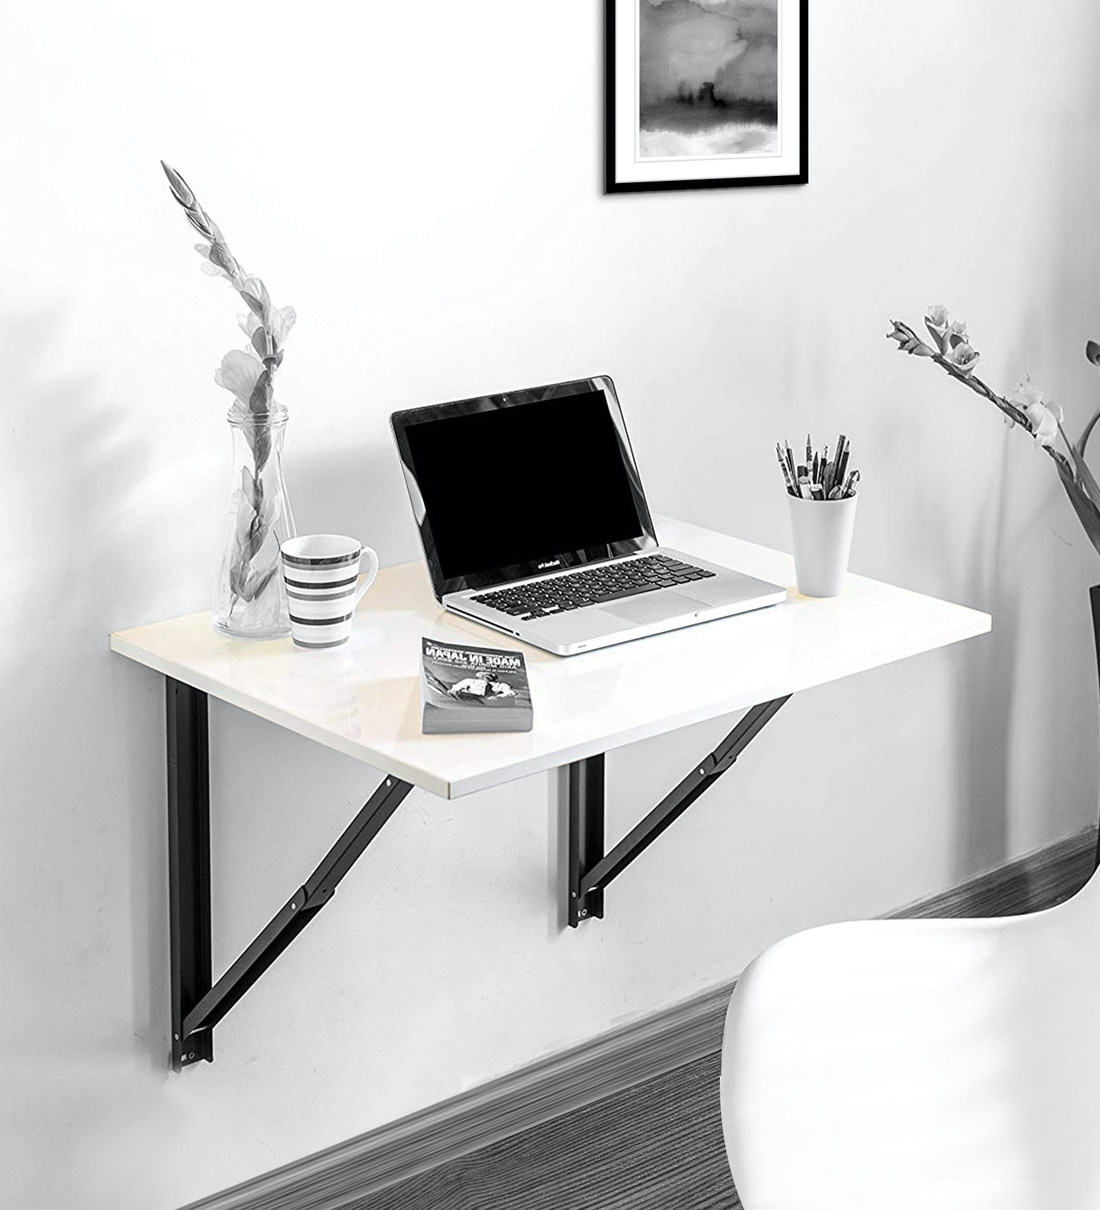 Buy Folding Wall Mounted Study Table Large In Glossy White Colour By Futurdecor Online Modern Writing Tables Tables Furniture Pepperfry Product